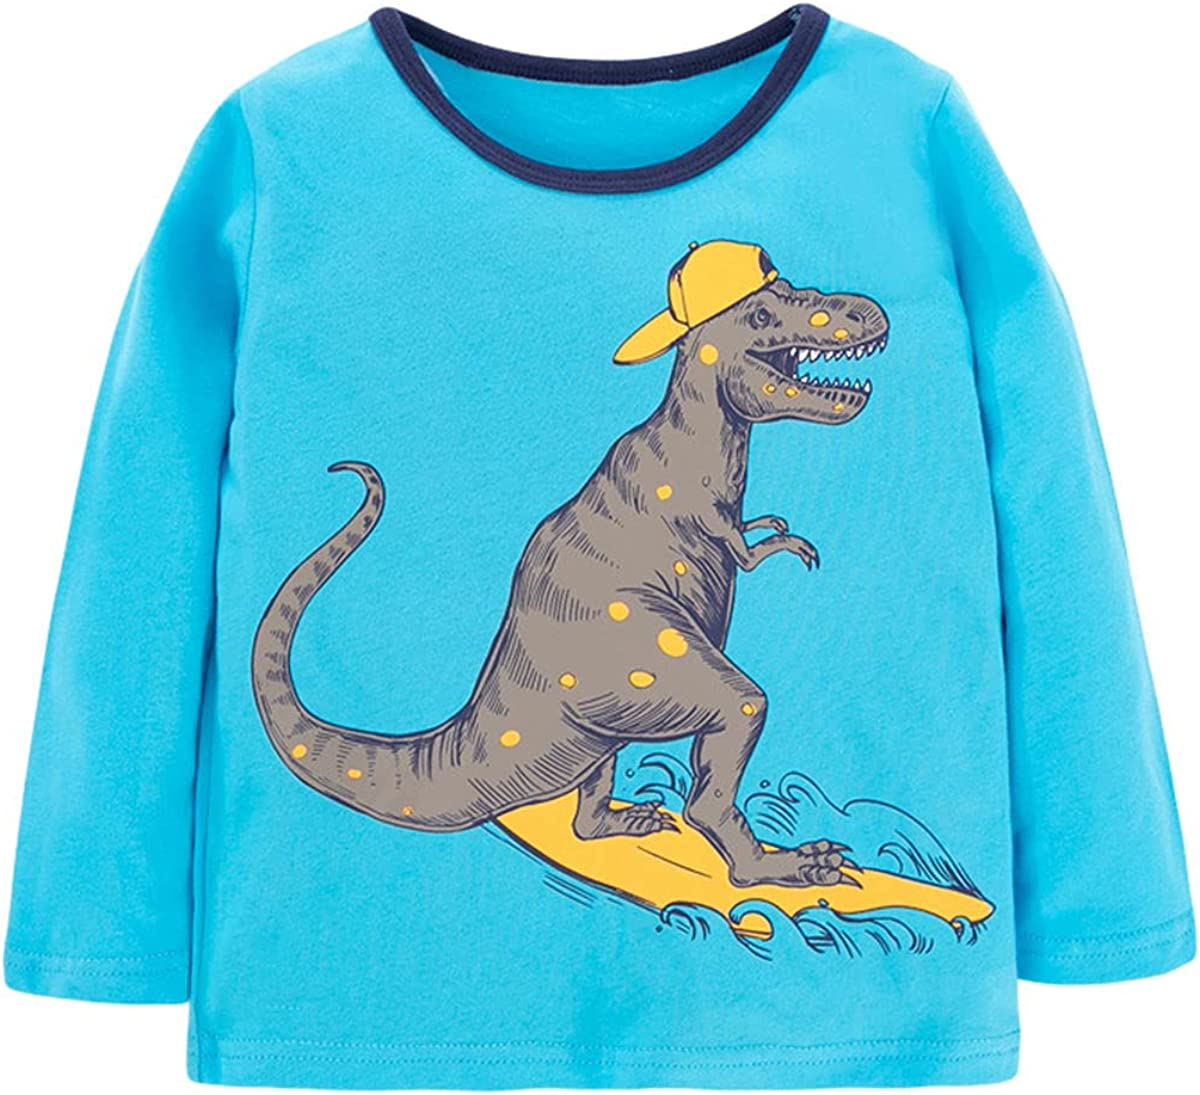 Little Boys Playwear Long-Sleeve T-Shirt Cartoon Graphic Pullover Sweater 100% Cotton Clothes 2-7T